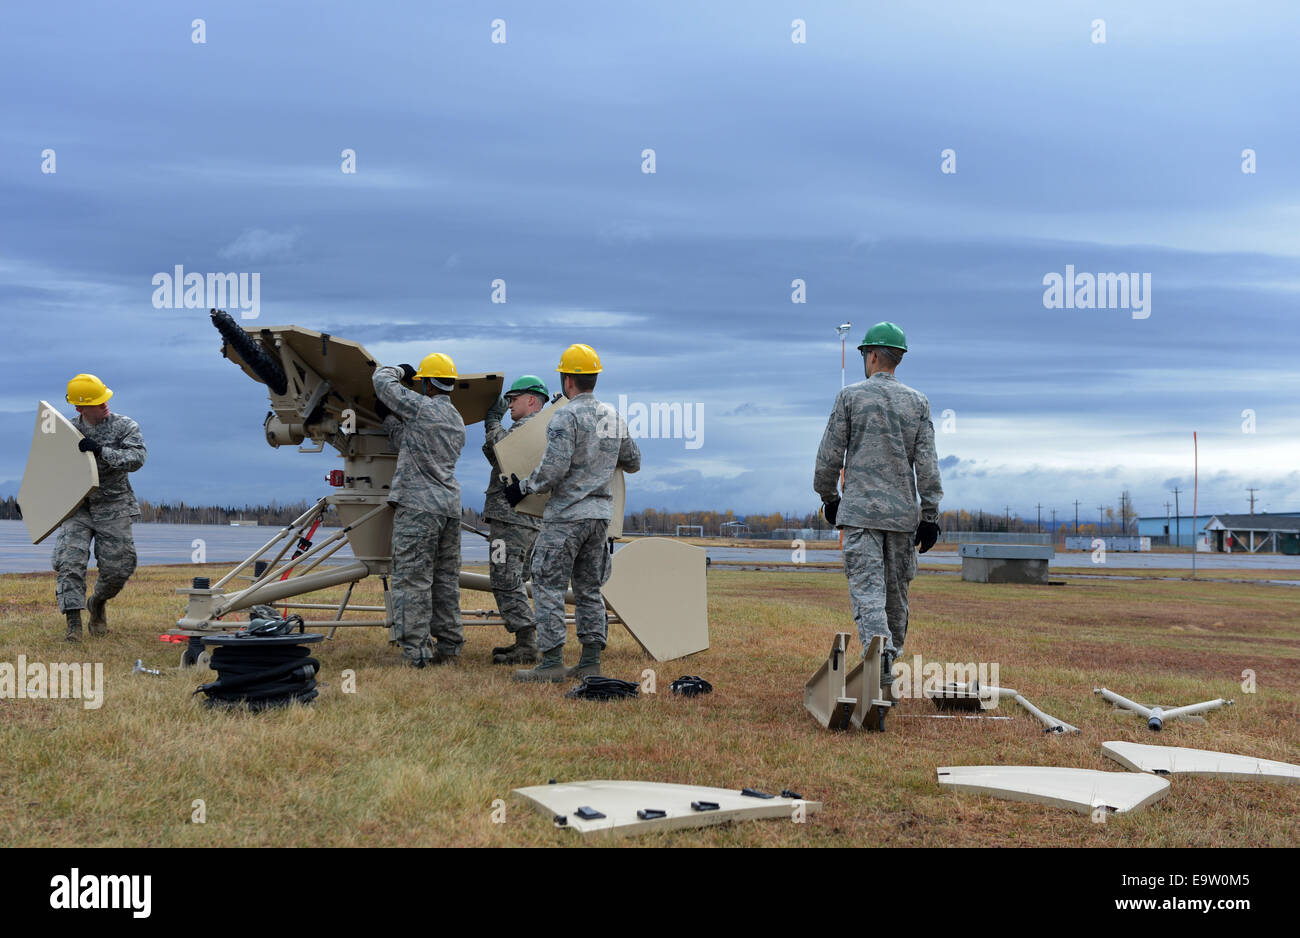 U.S. Airmen with the 52nd Combat Communications Squadron work together to assemble a ground multiband terminal during - Stock Image